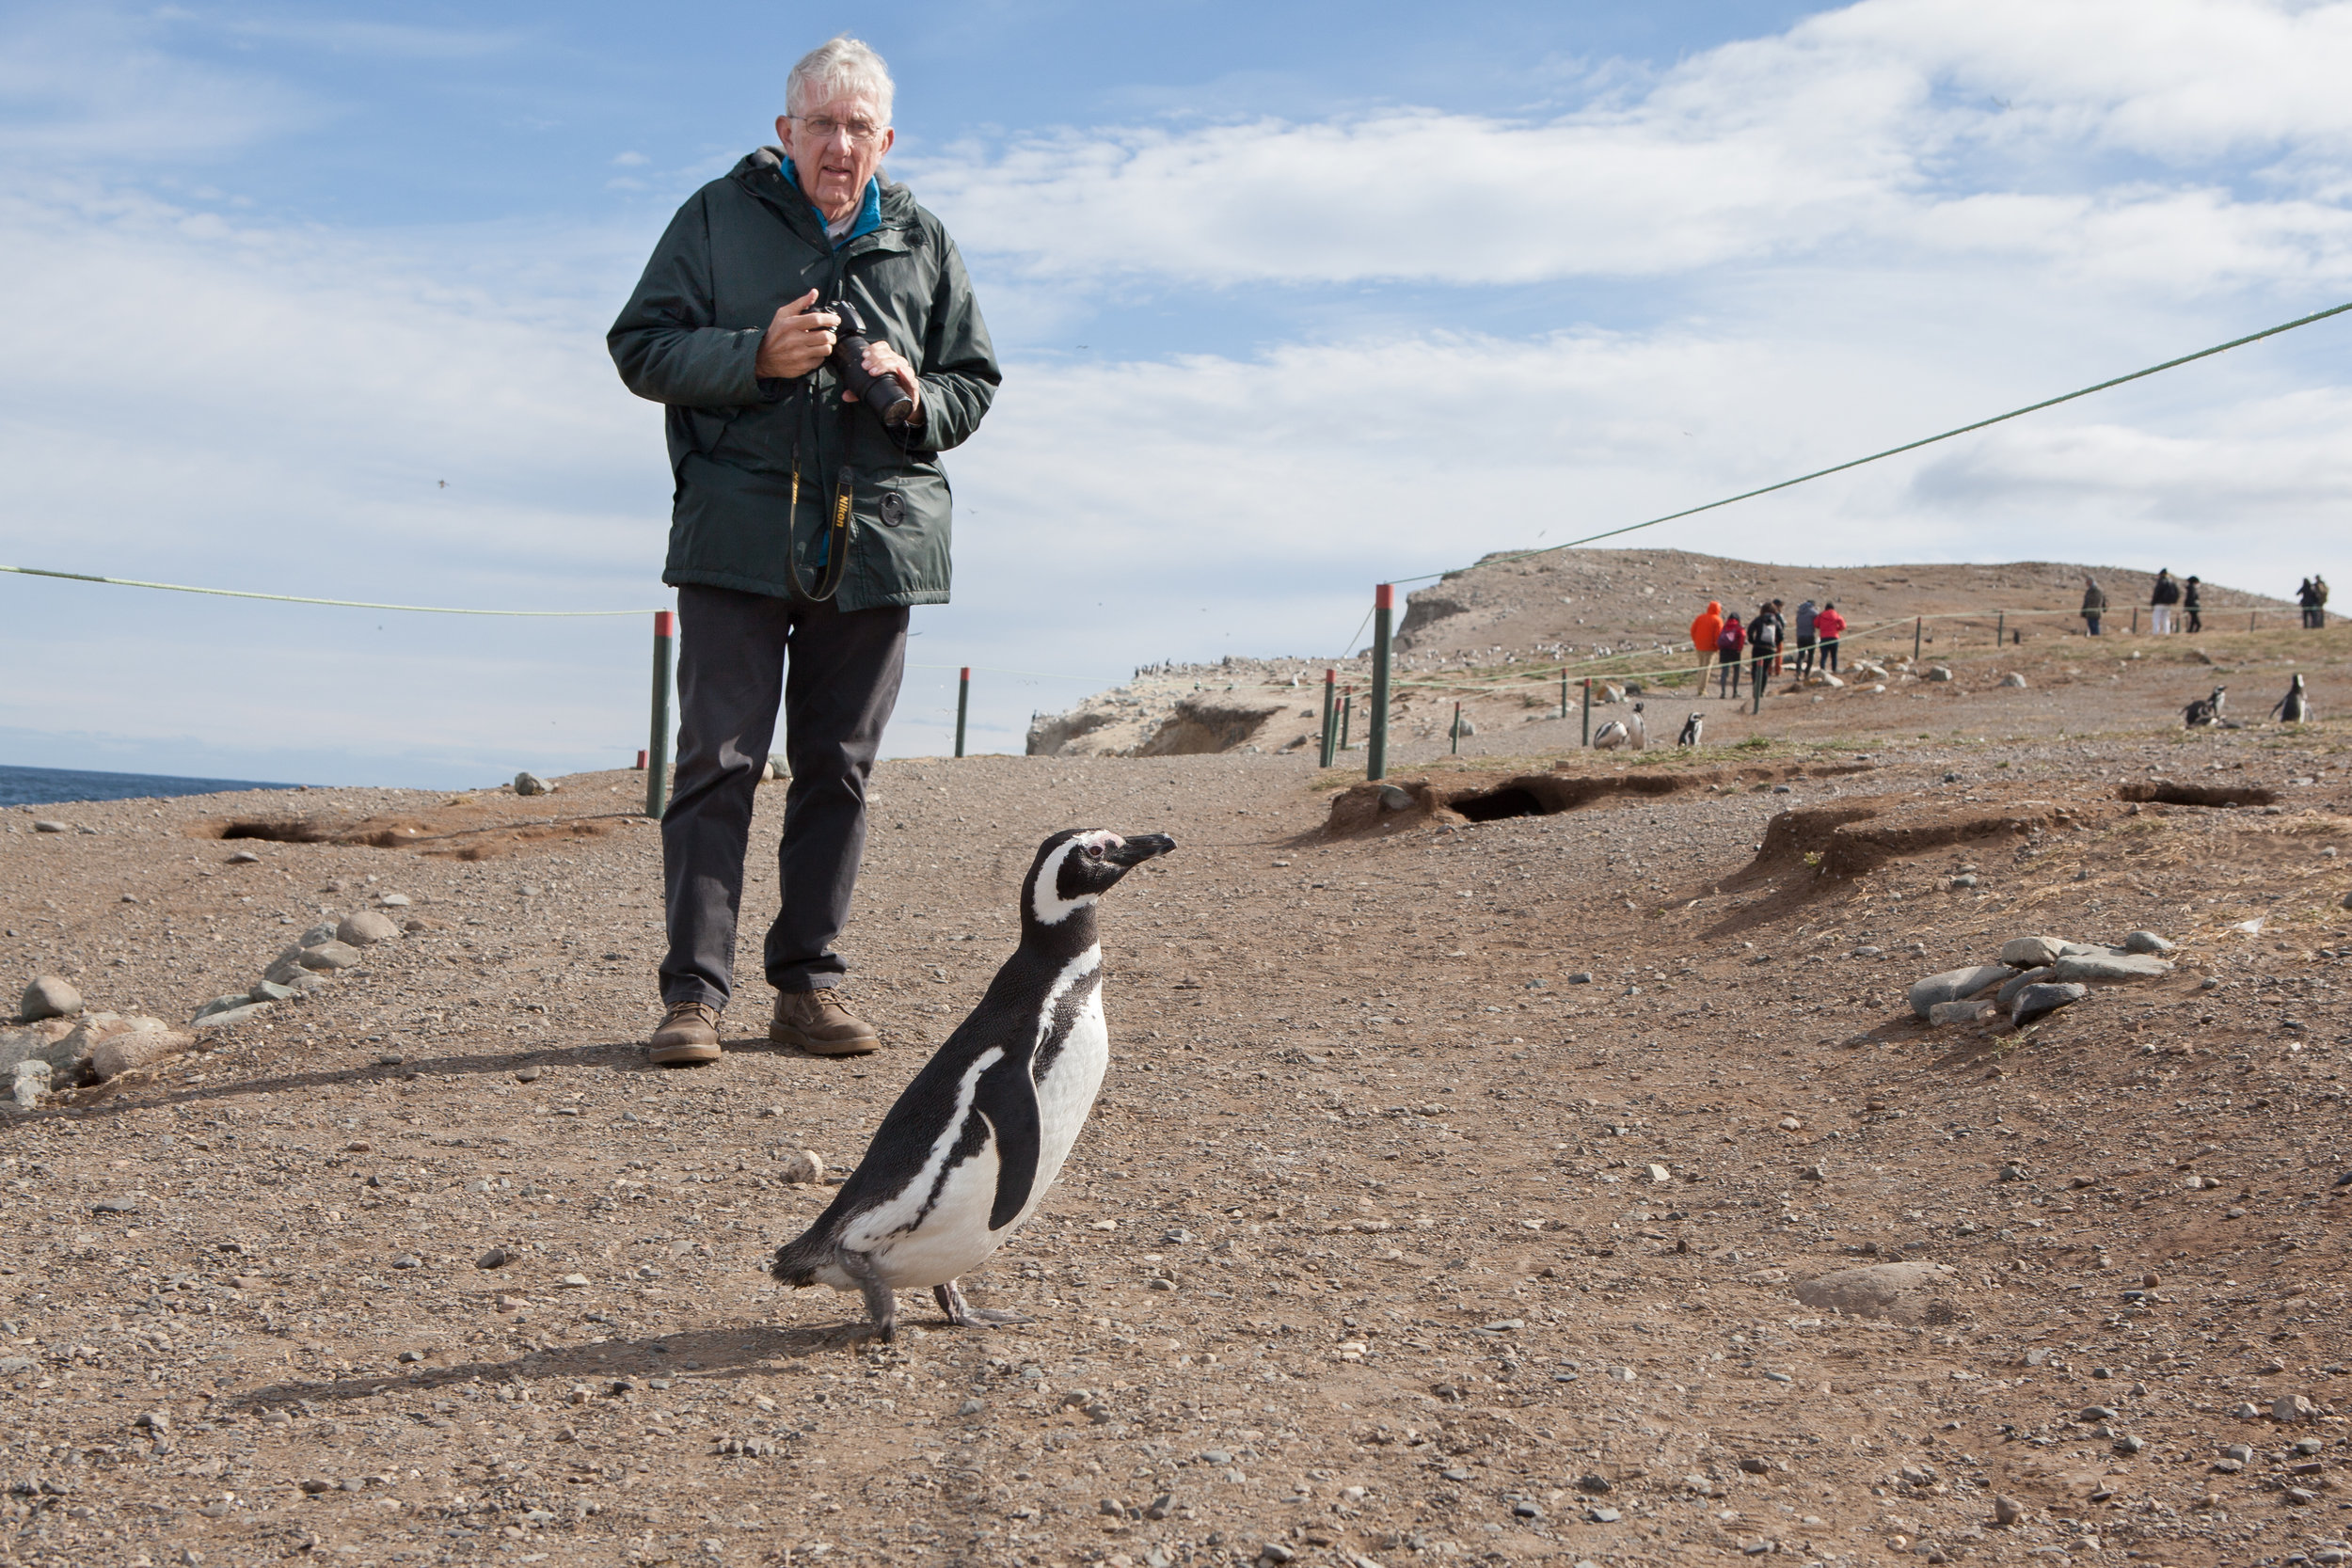 While visiting Magdalena Island in Chile, I noticed a little penguin crossing the road. The gentleman I photographed was in absolute awe as he put down his camera to experience this moment. After I photographed him, he just looked up at me and smiled.